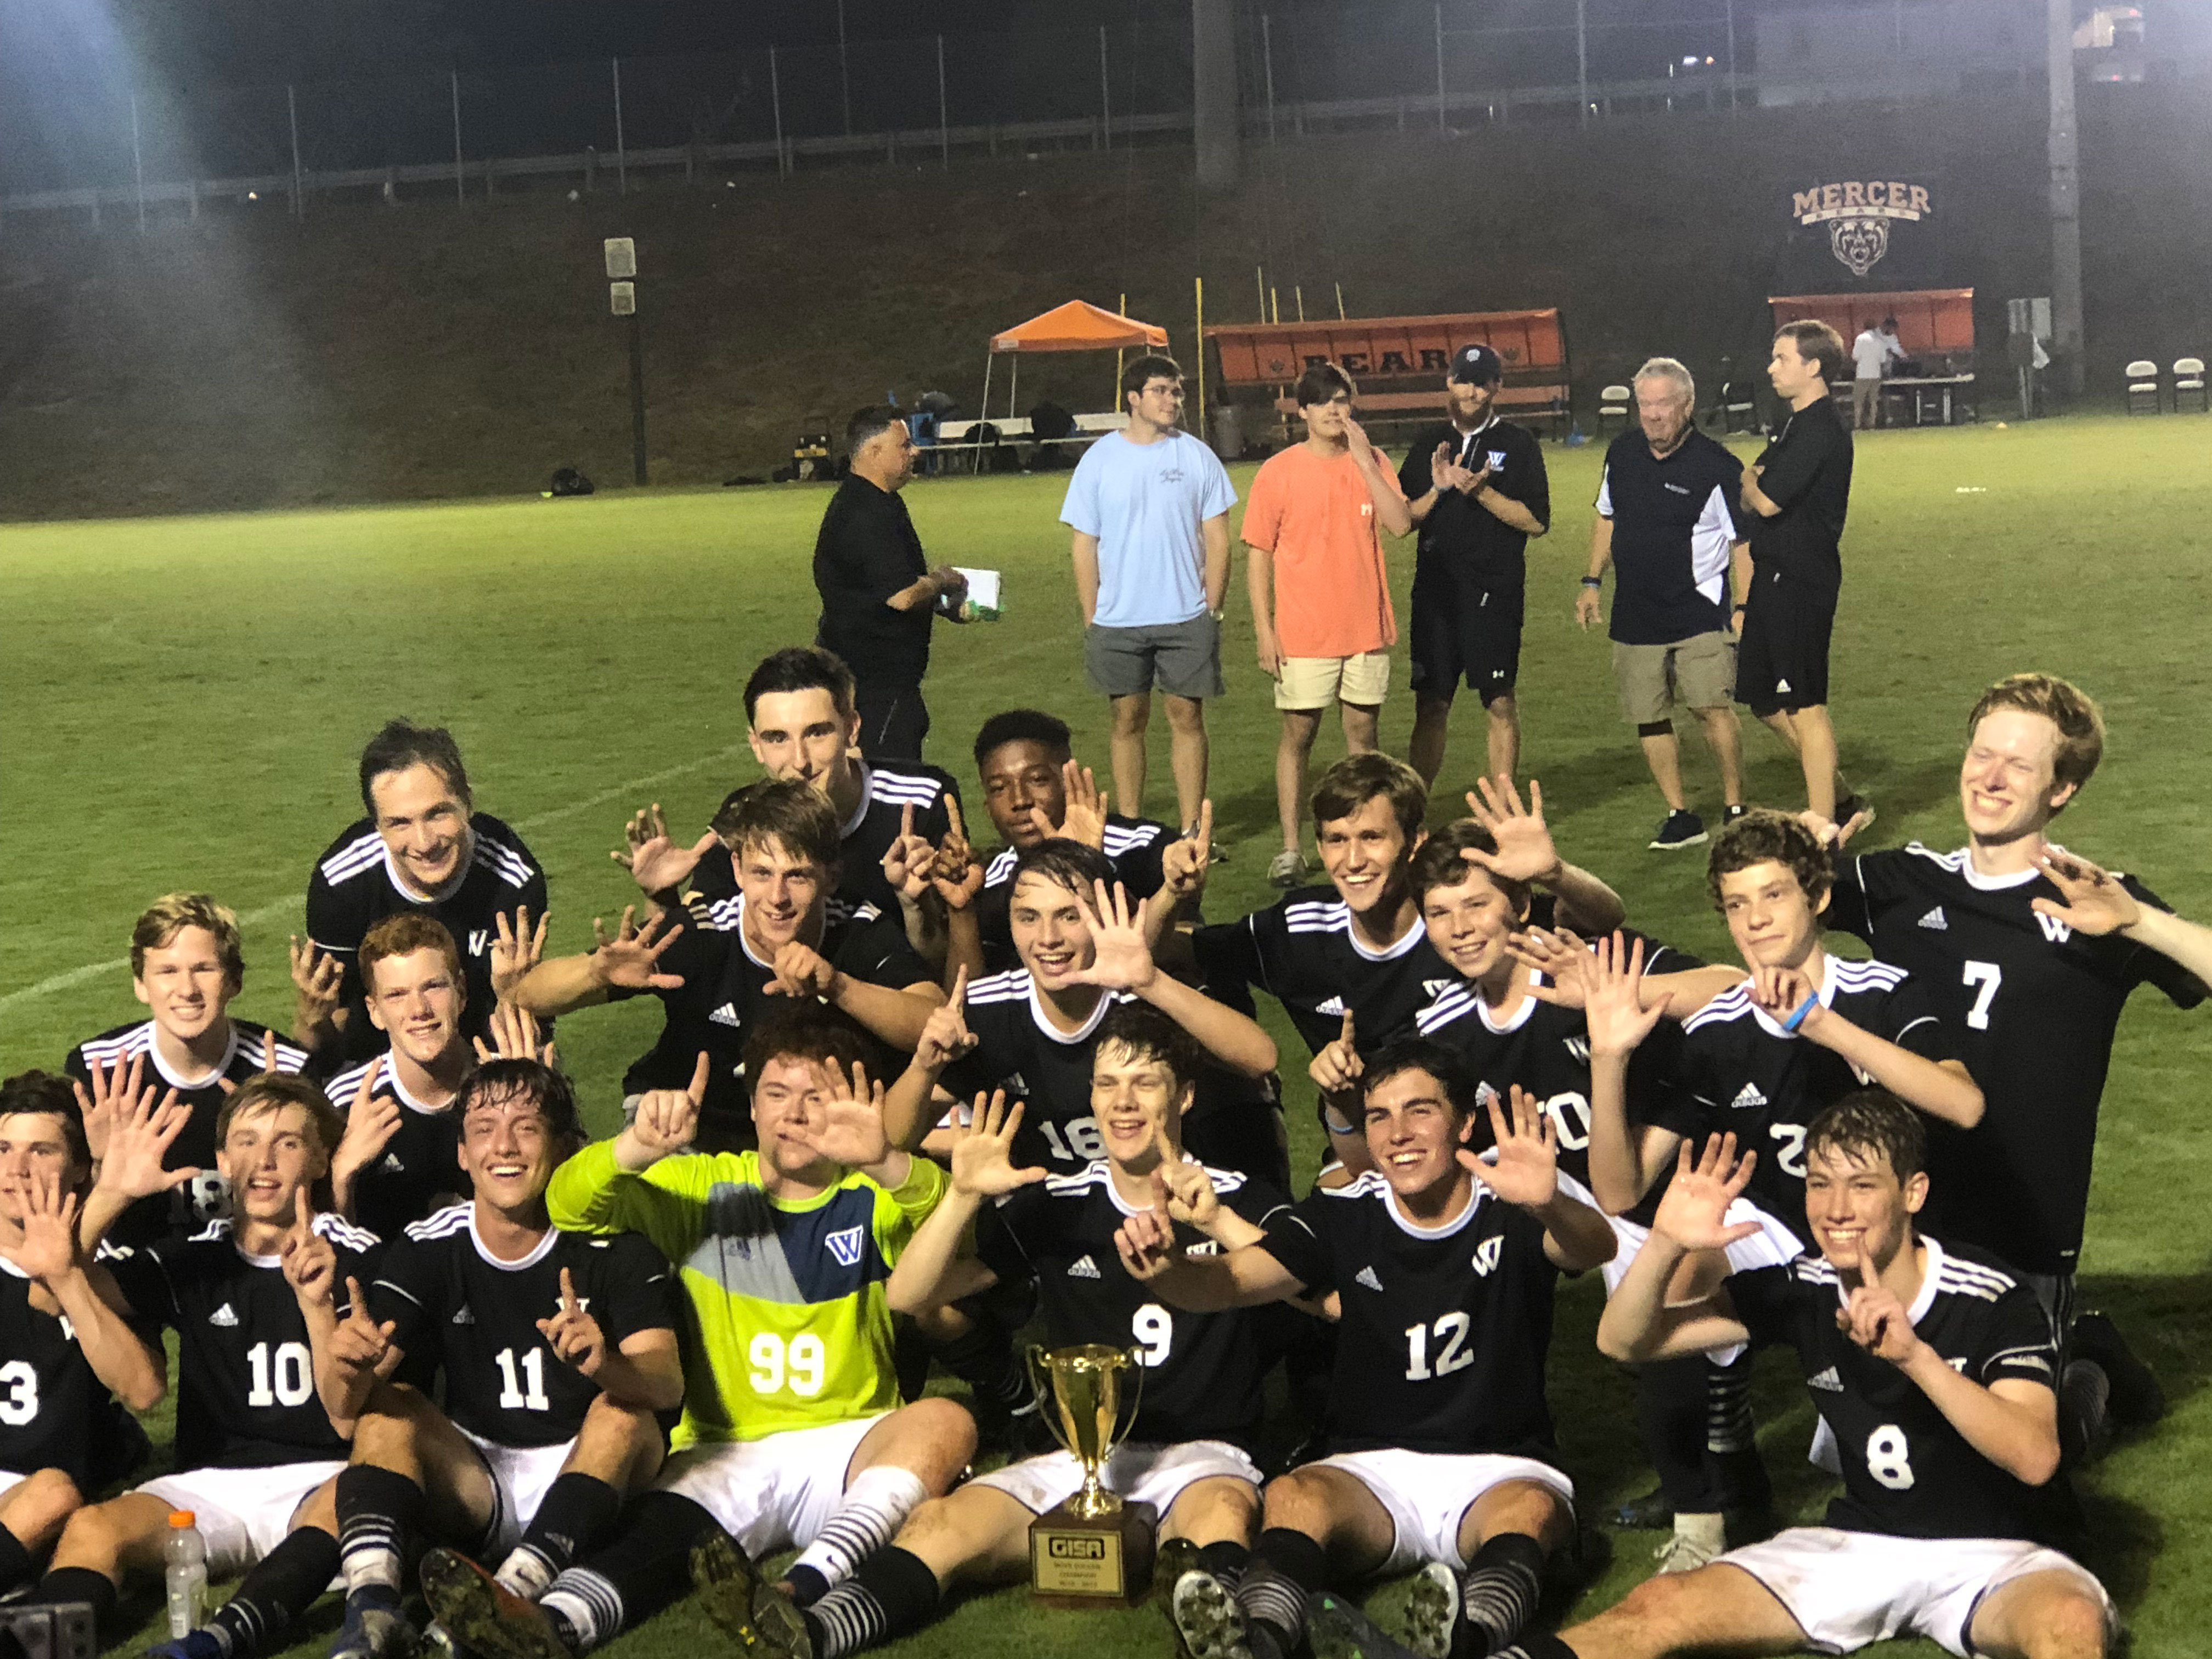 boys soccer state champs photo | Westminster